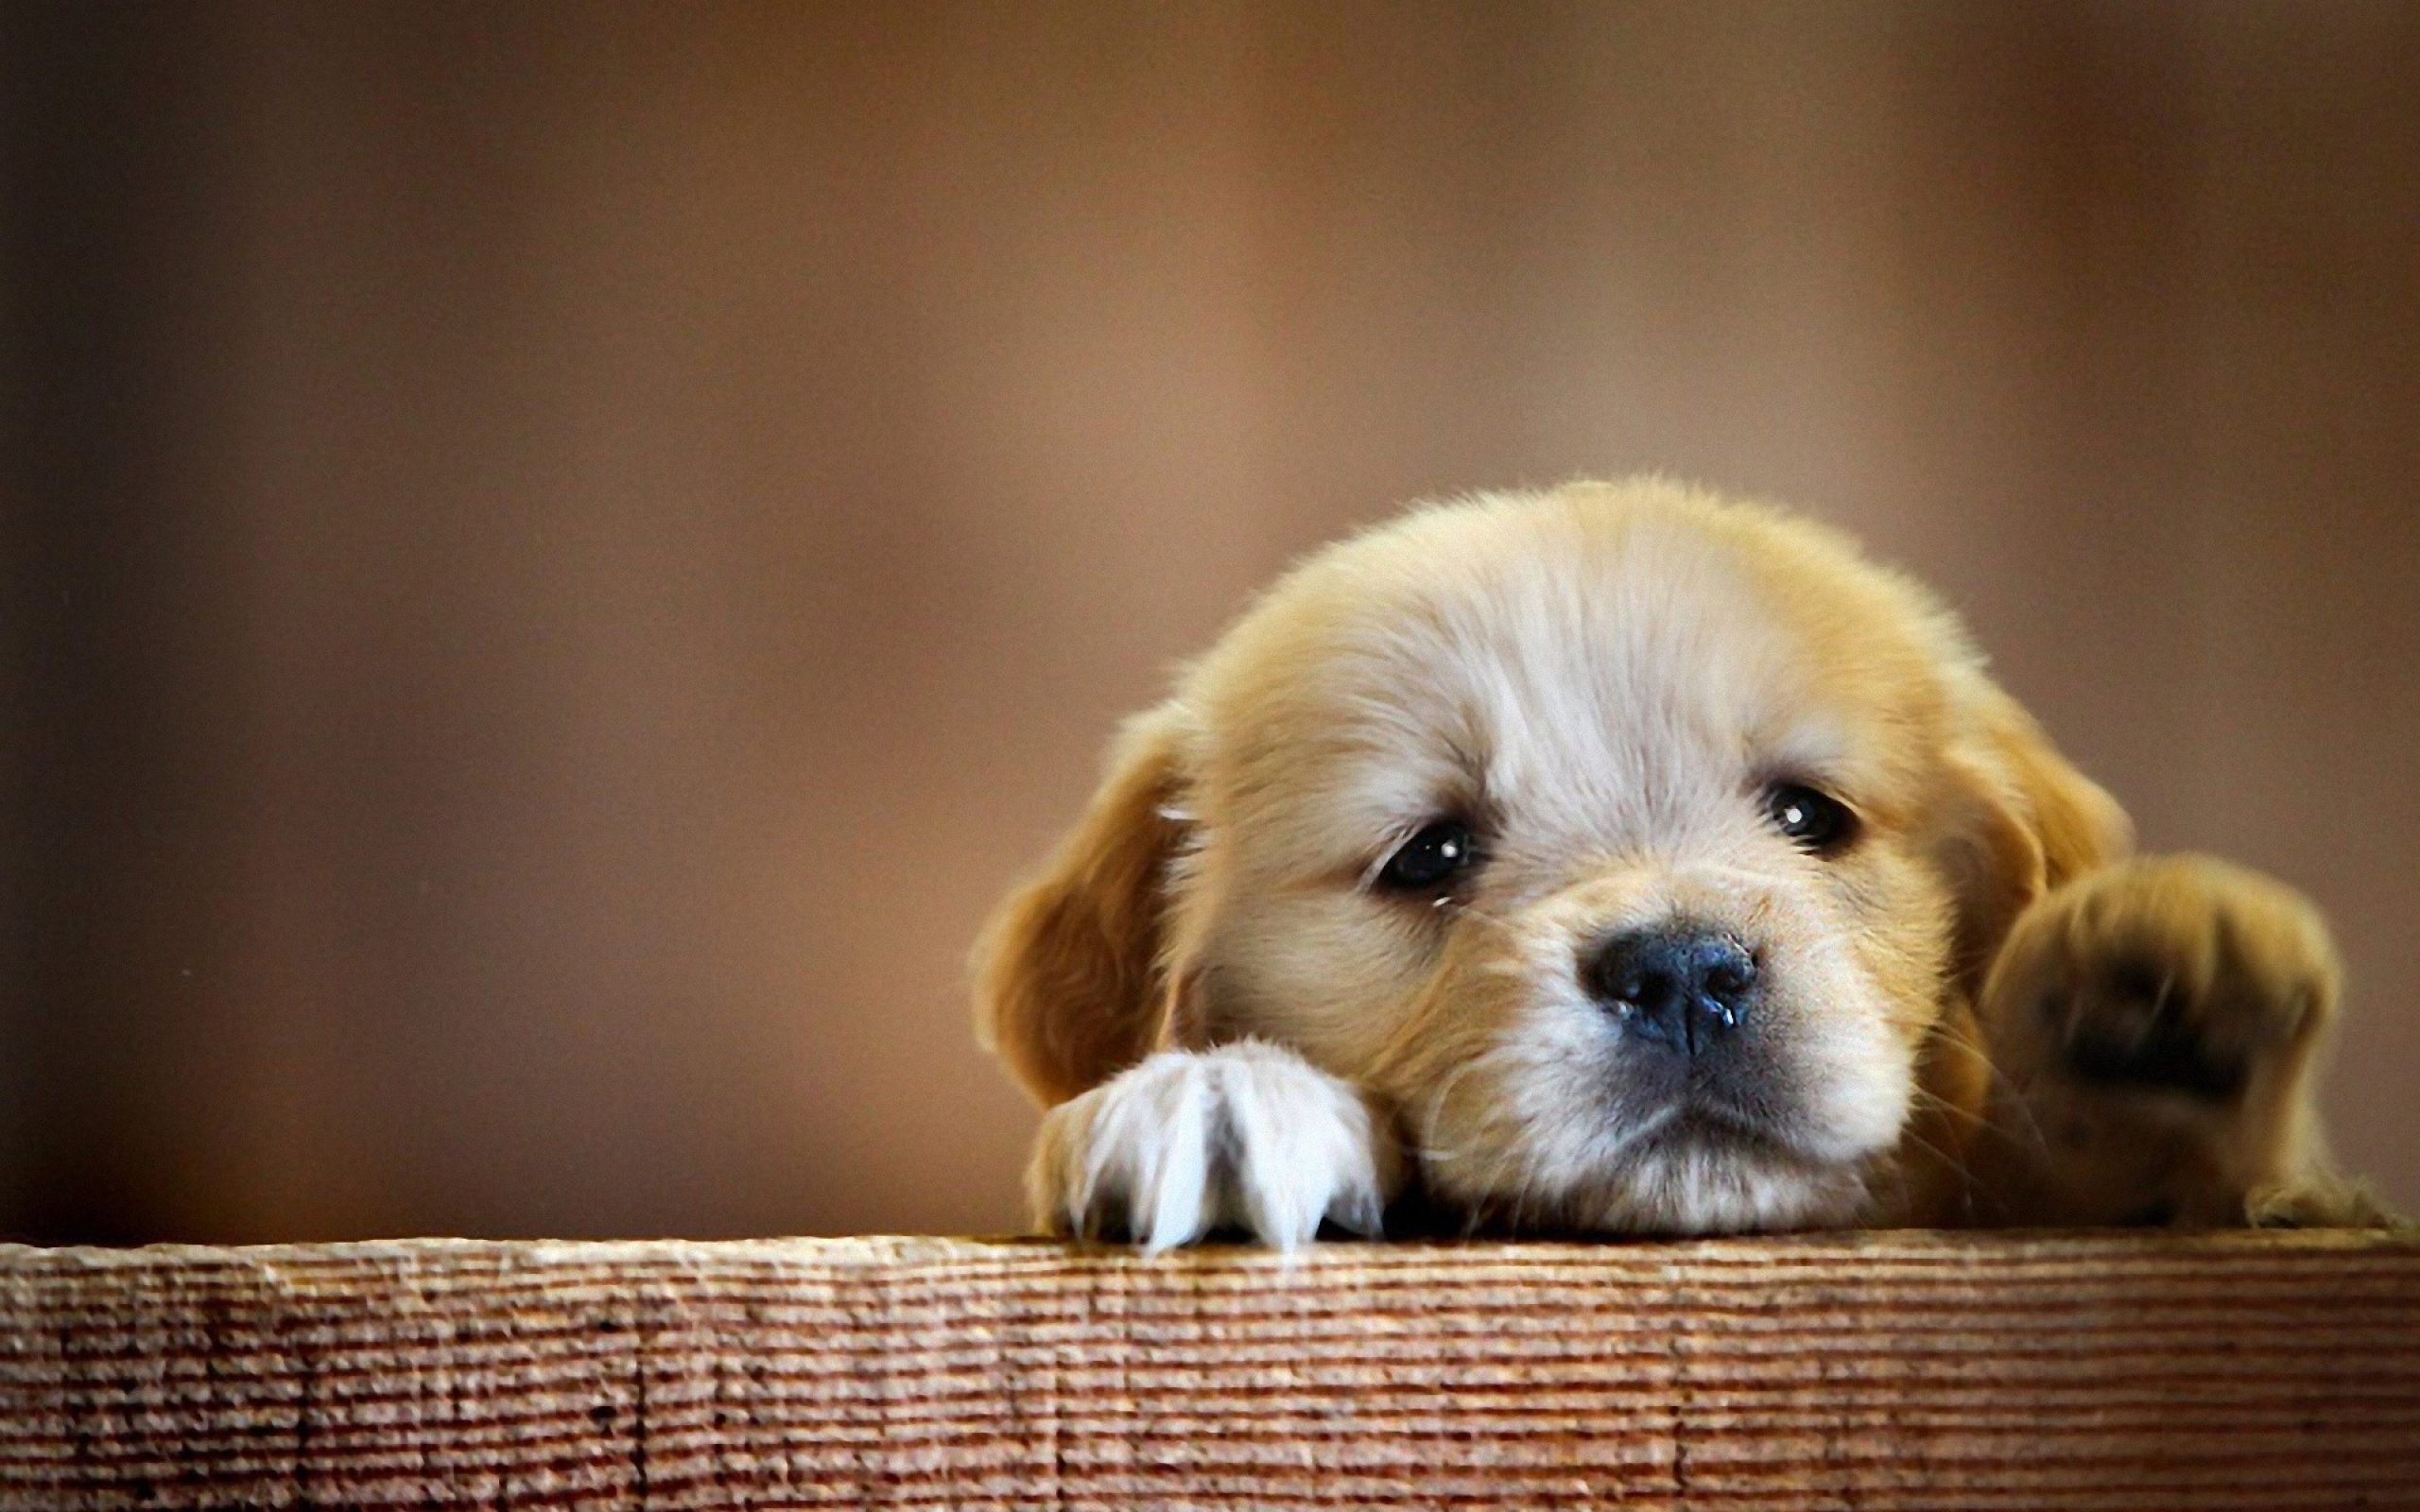 Dog Wallpapers   Top Dog Backgrounds   WallpaperAccess 2560x1600